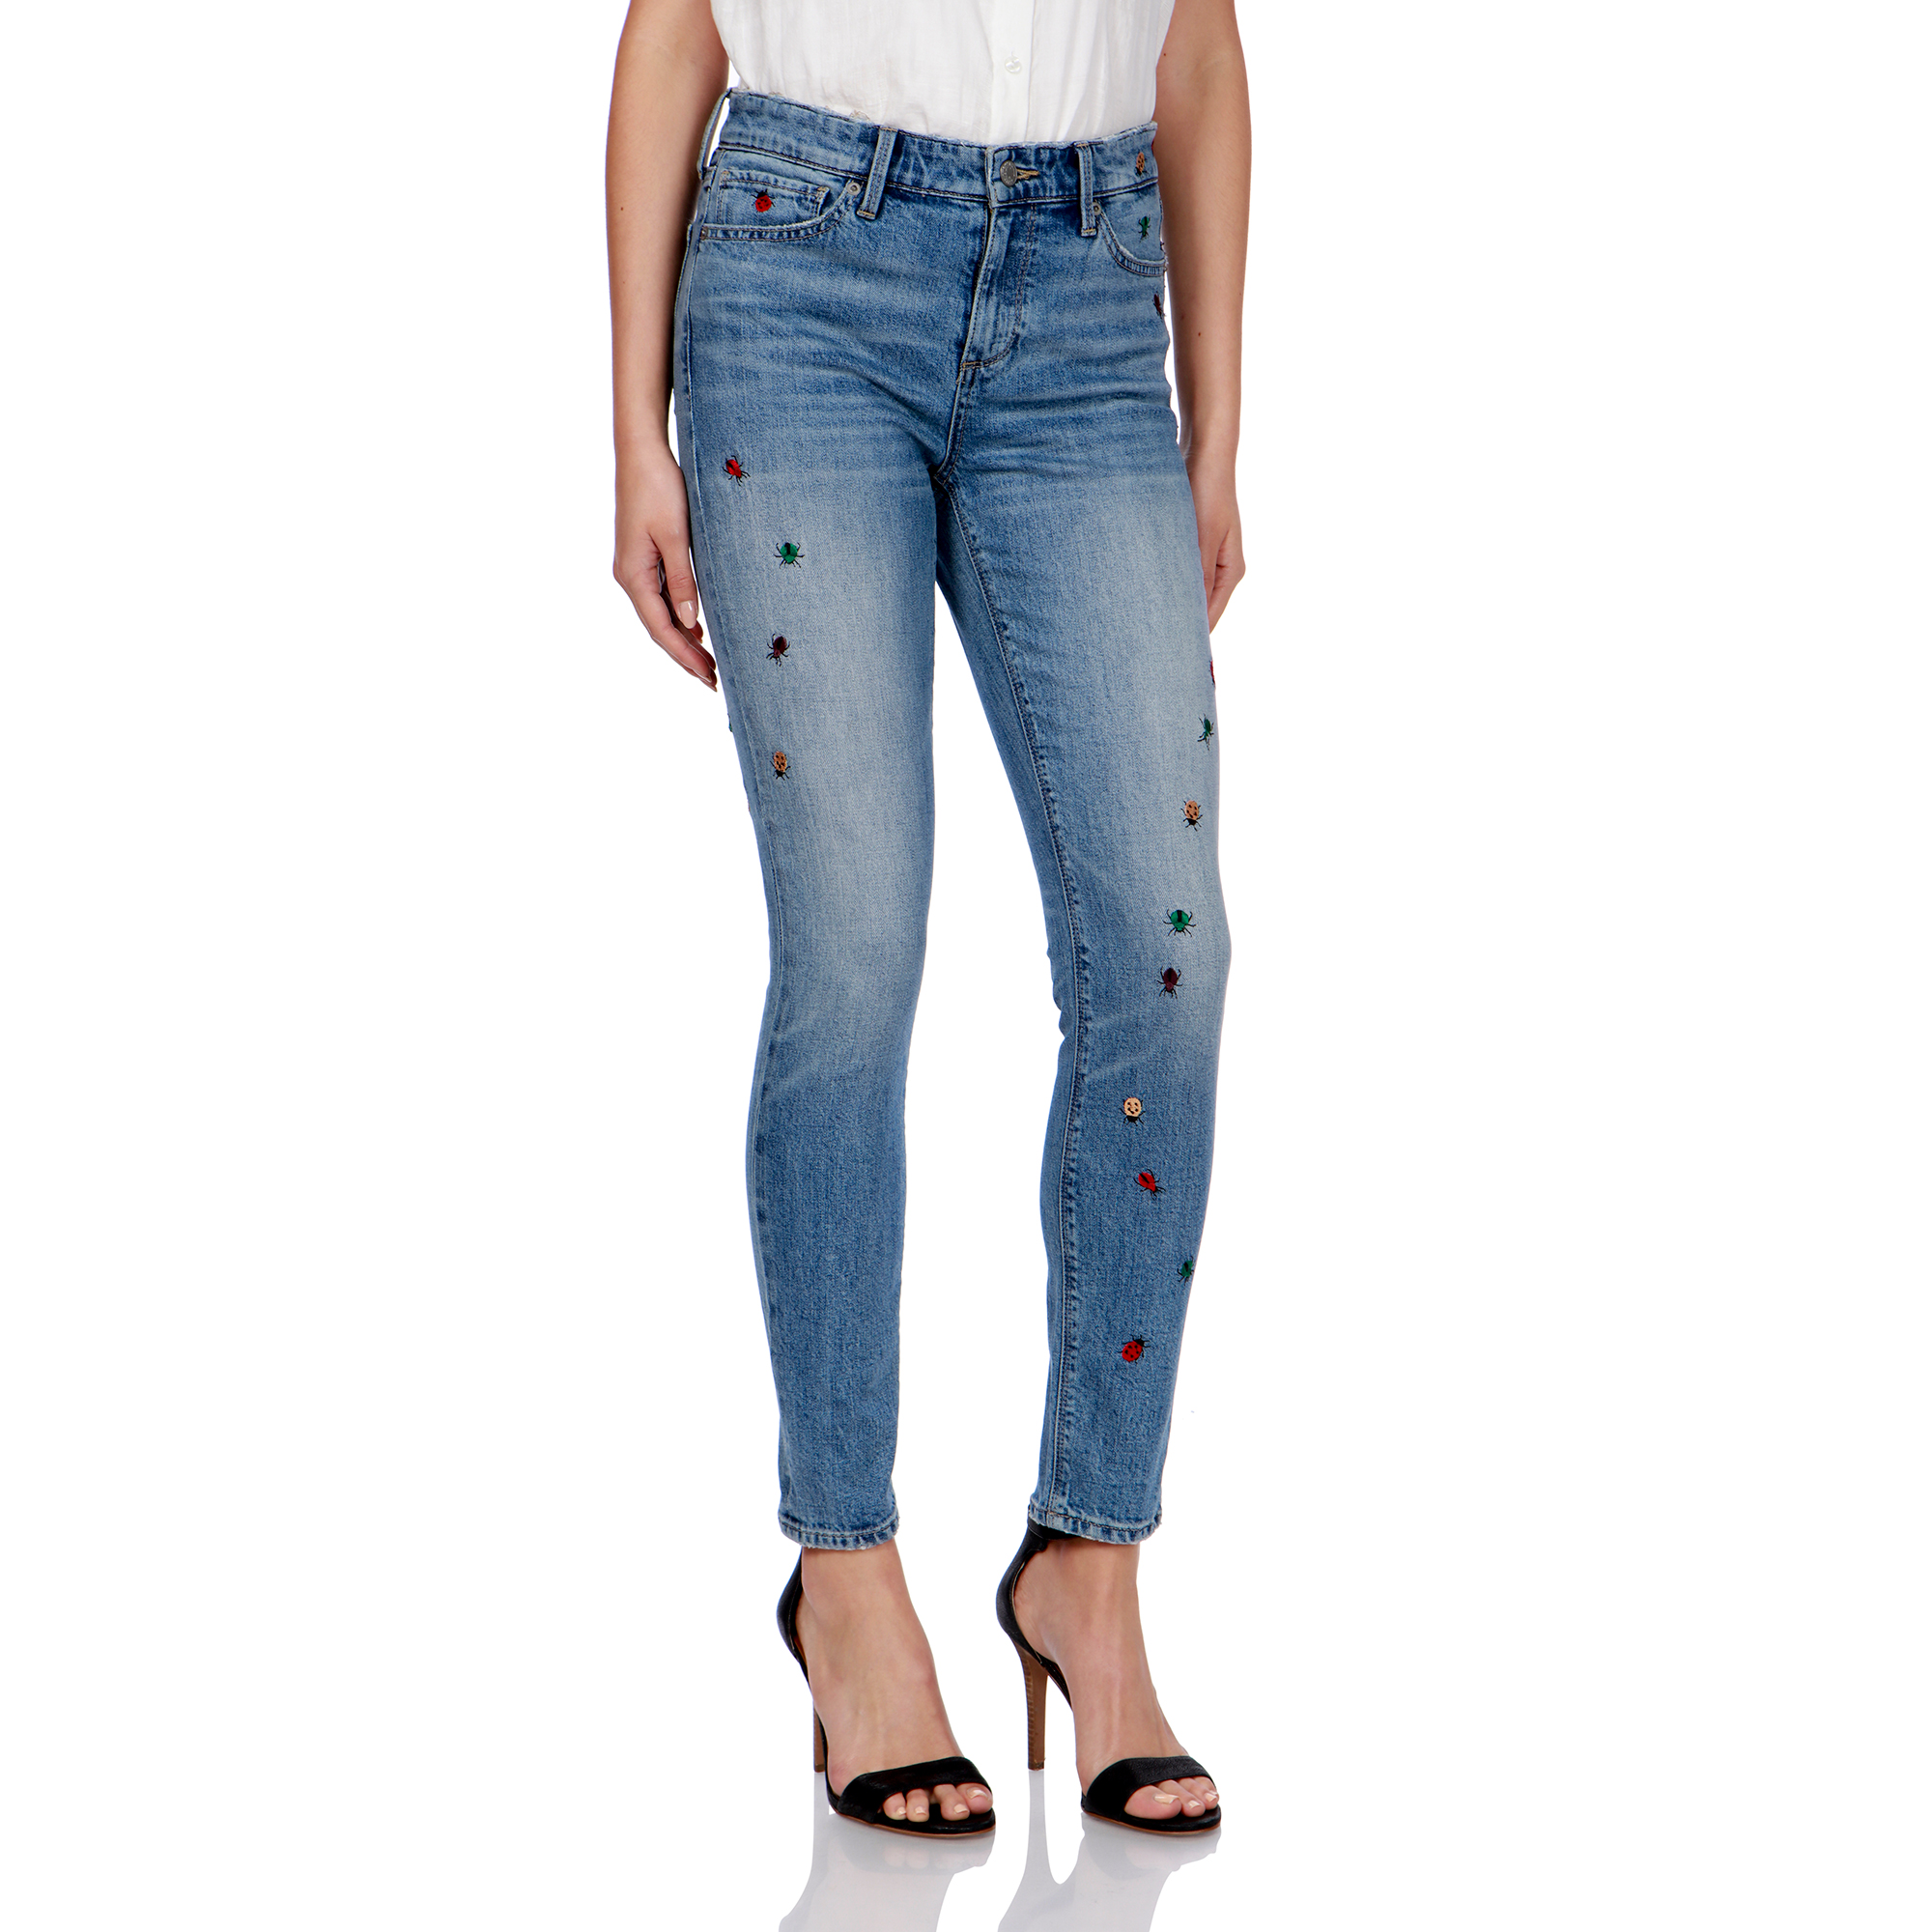 Monterey Wash Chicas Ropa Lucky Brand Niños Zoe Jeans w/ Embroidery  (Toddler)